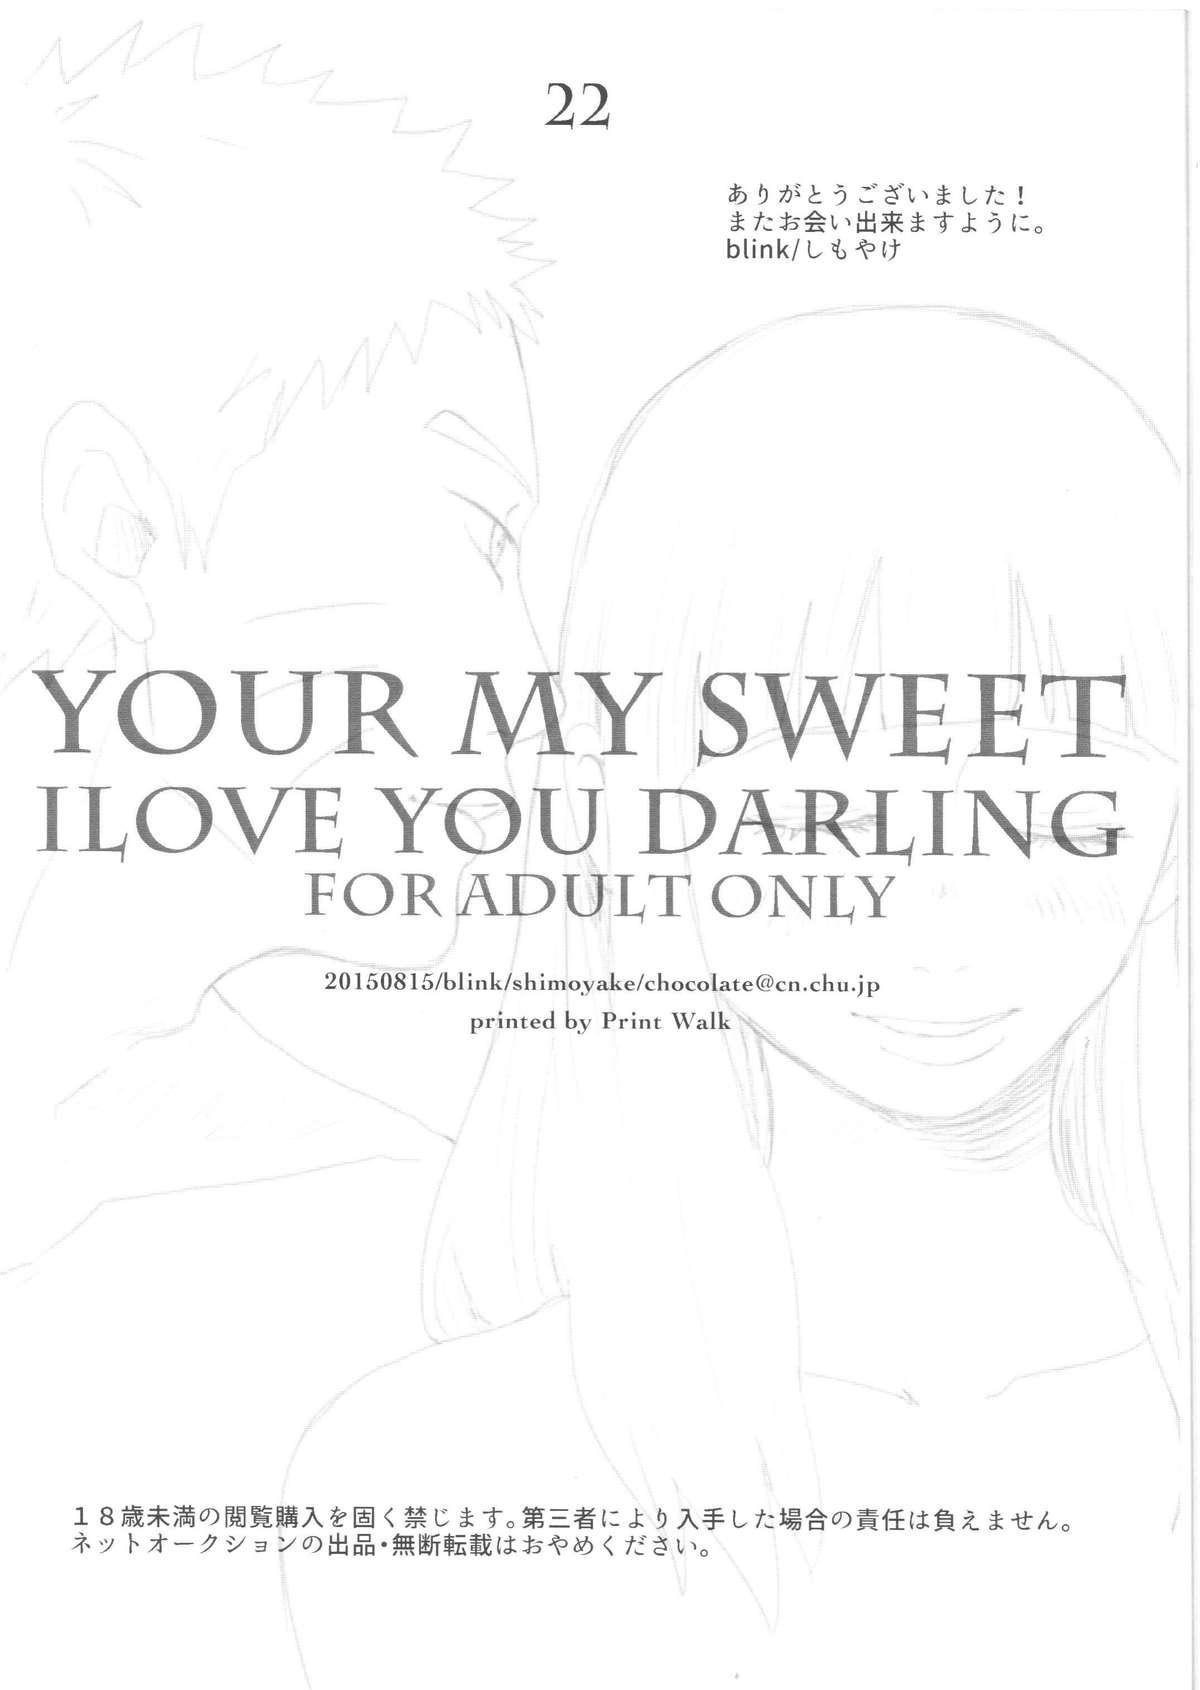 YOUR MY SWEET - I LOVE YOU DARLING 21